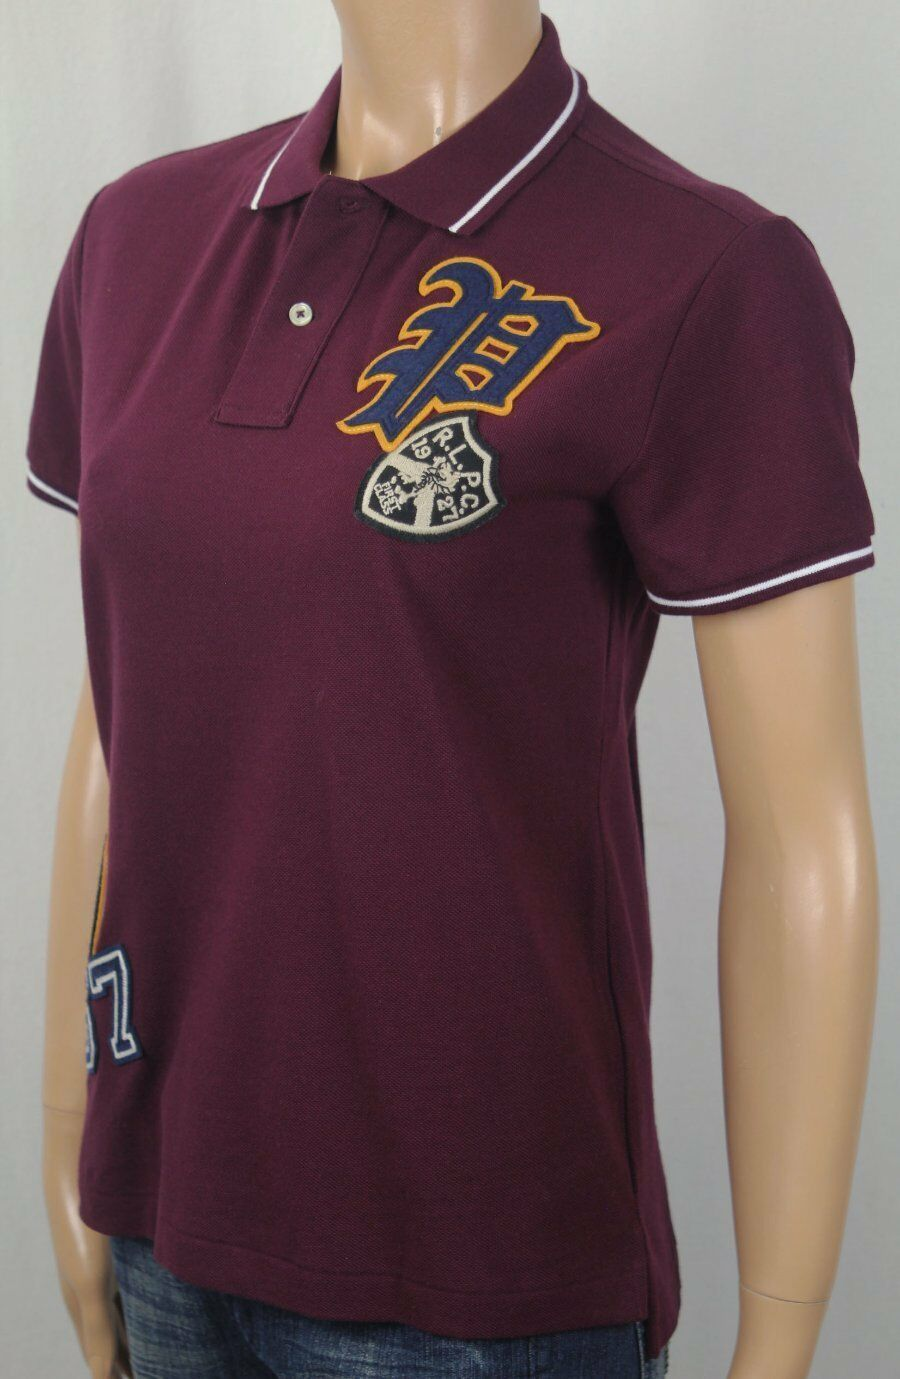 Polo Ralph Lauren Burgundy Classic Fit Varsity Shirt NWT